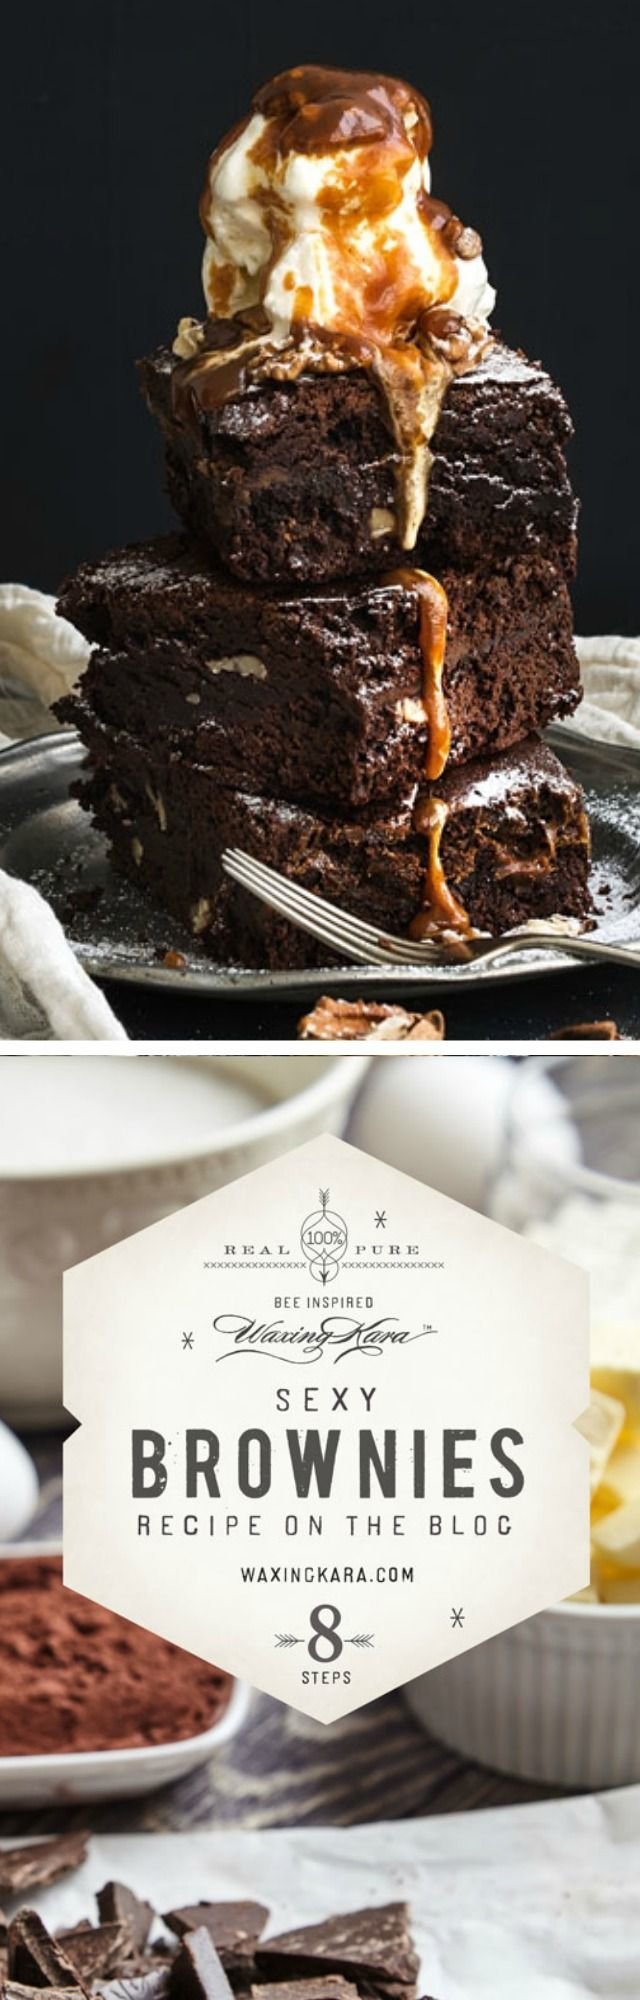 Enjoy this delicious, tasty, indulgent Sexy Brownie recipe, made with natural honey and topped with a creamy sauce. It's the best dessert to share with friends or for a romantic after dinner treat.